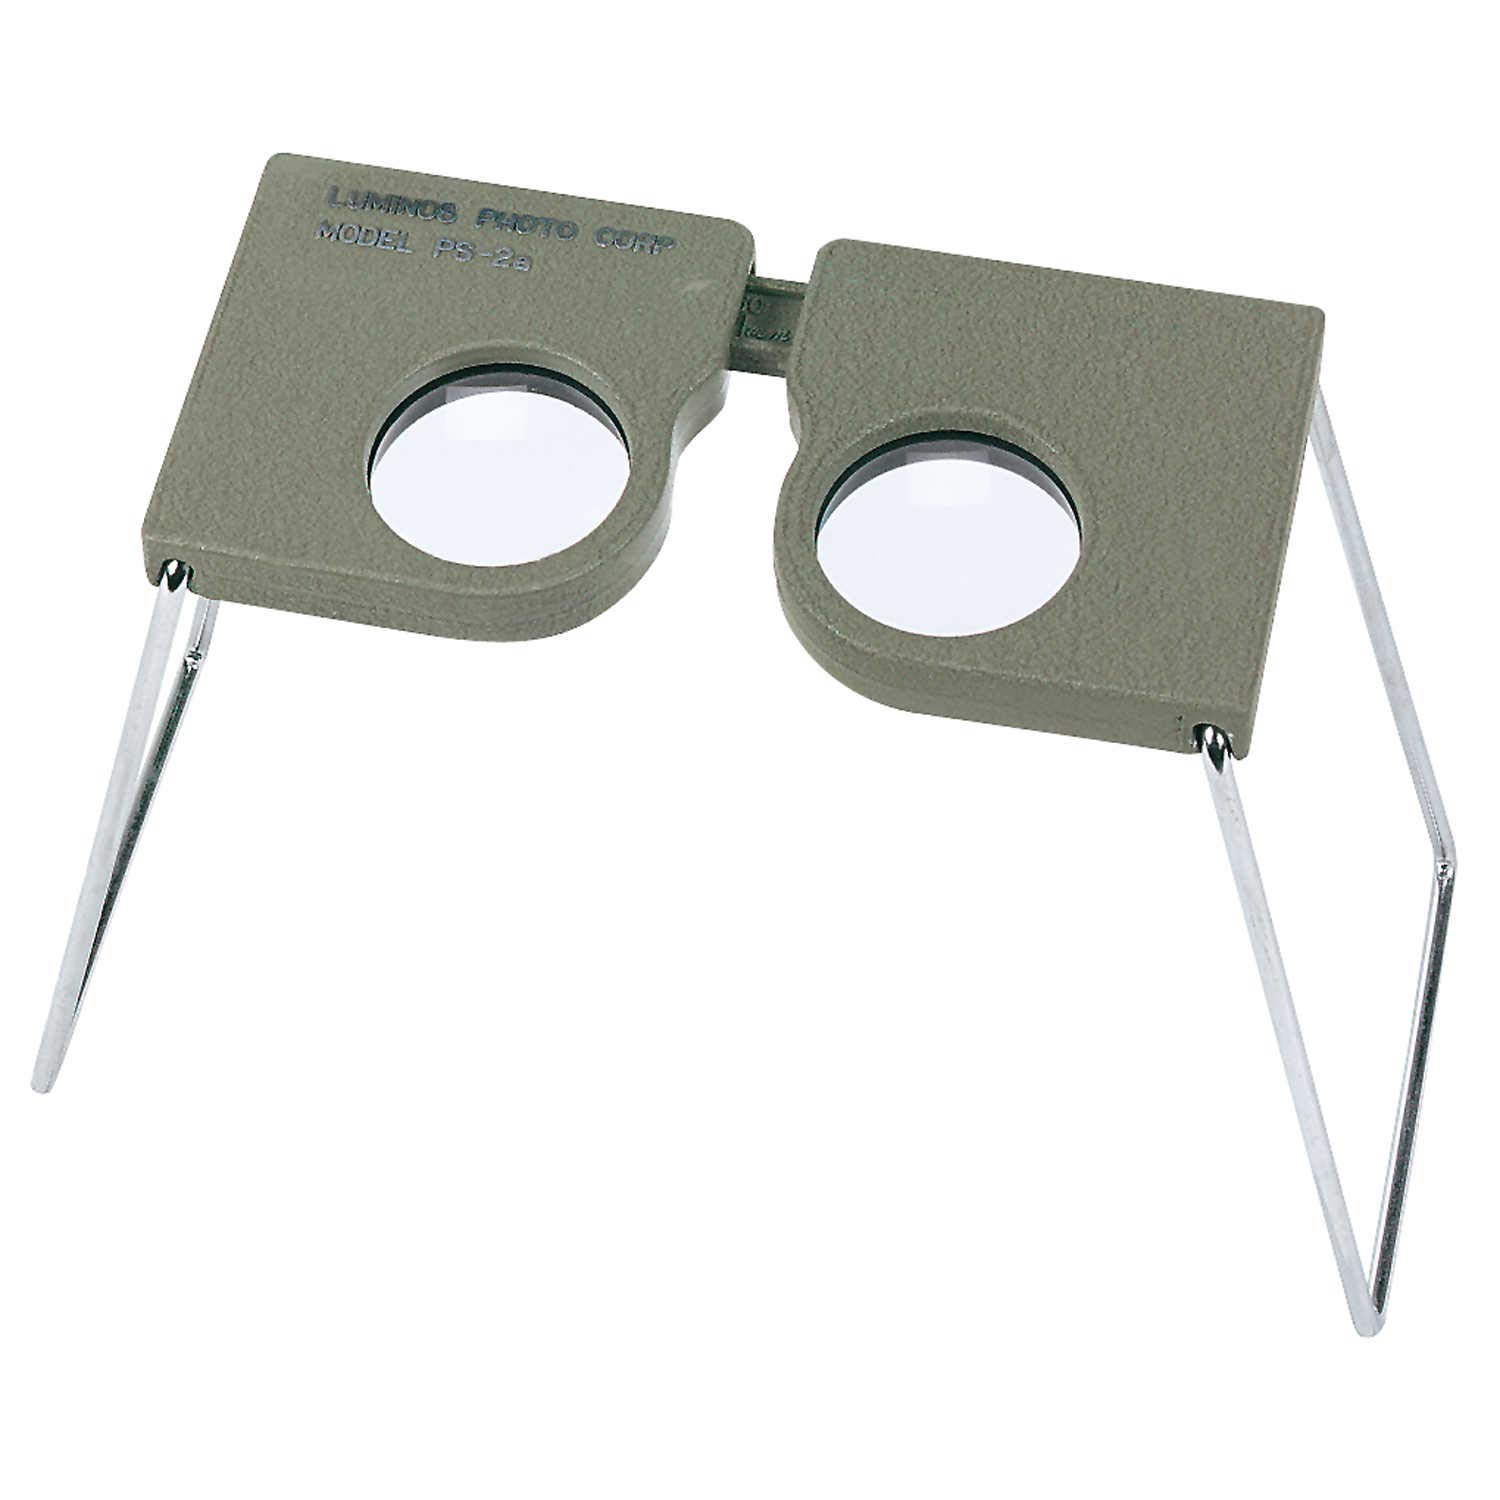 Forestry Suppliers Pocket Stereoscope (4x)